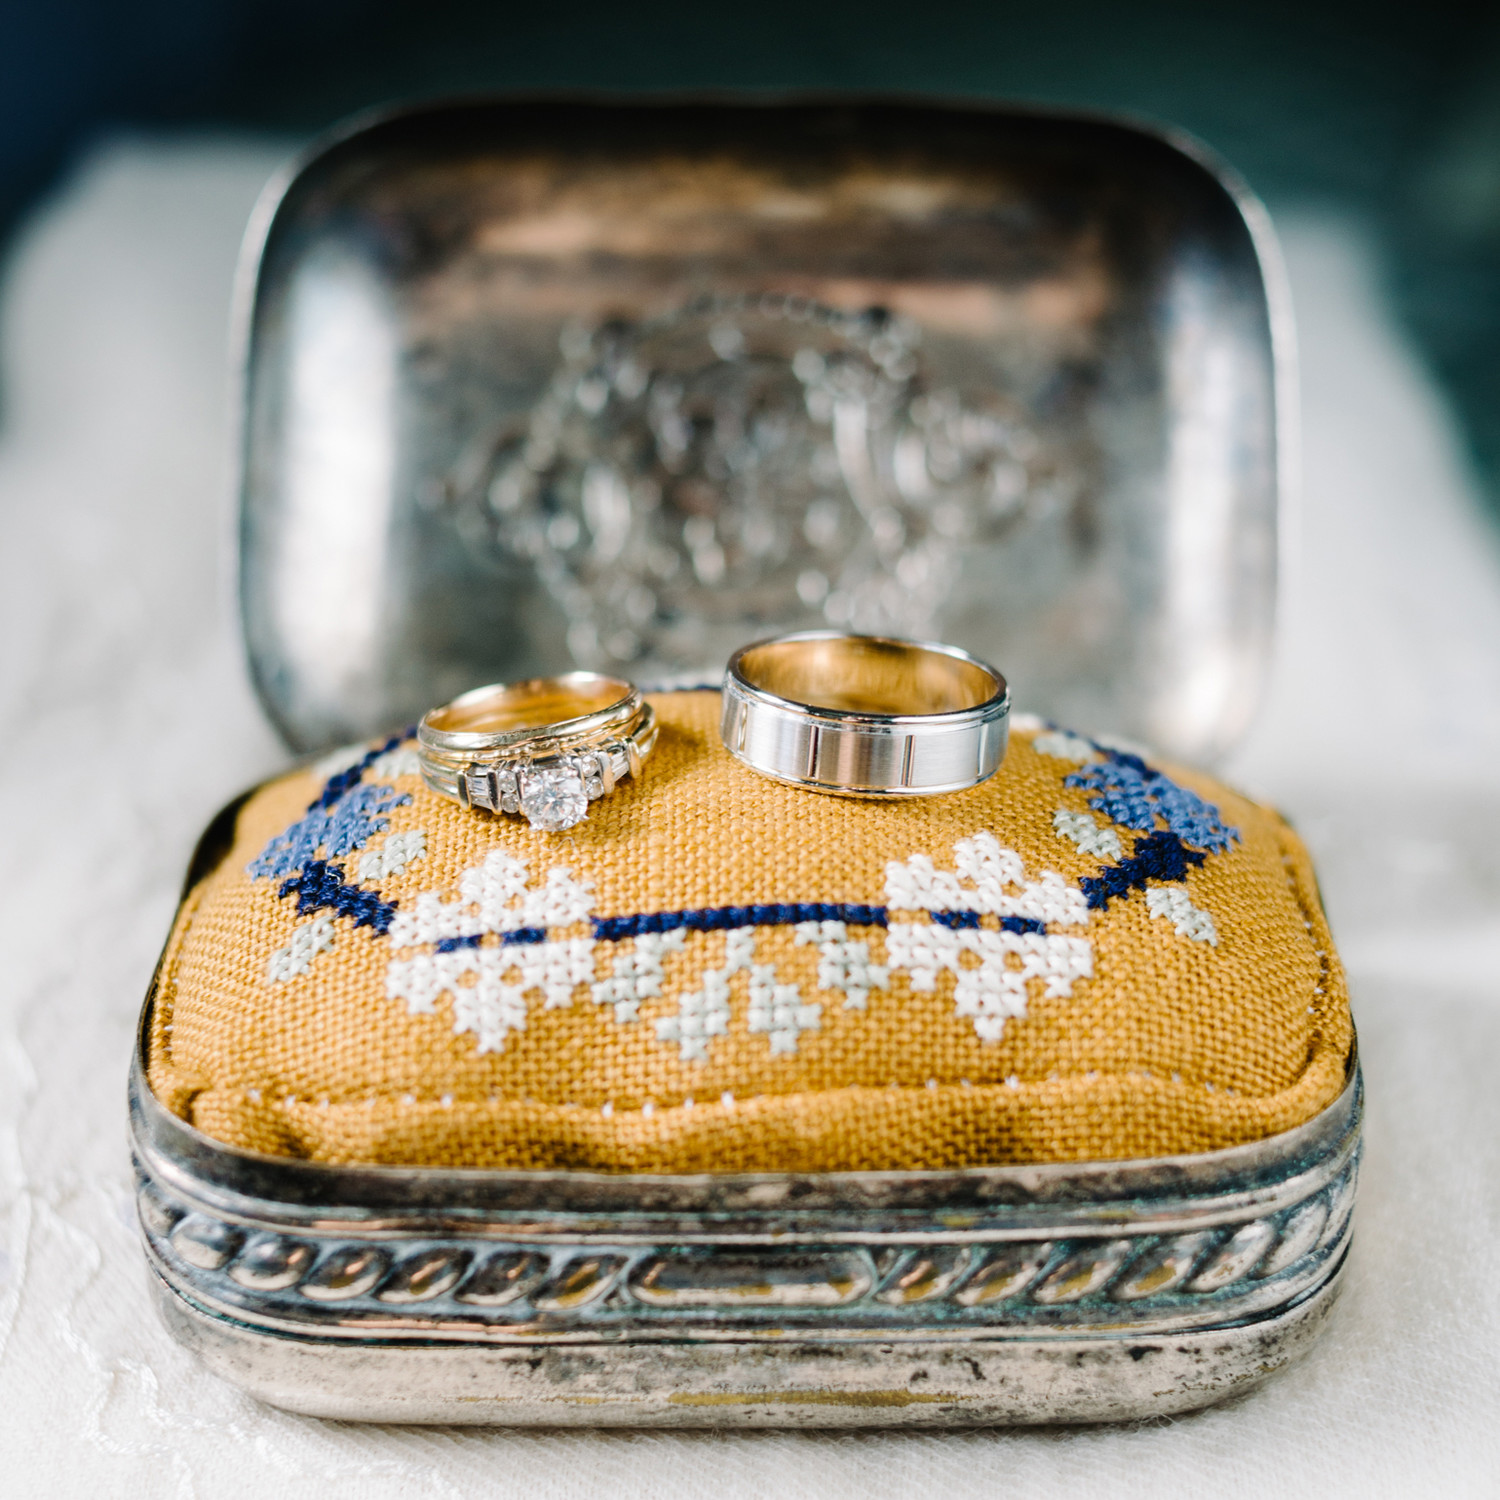 10 wedding ring box ideas for converting a holder into a keepsake - Wedding Ring Box